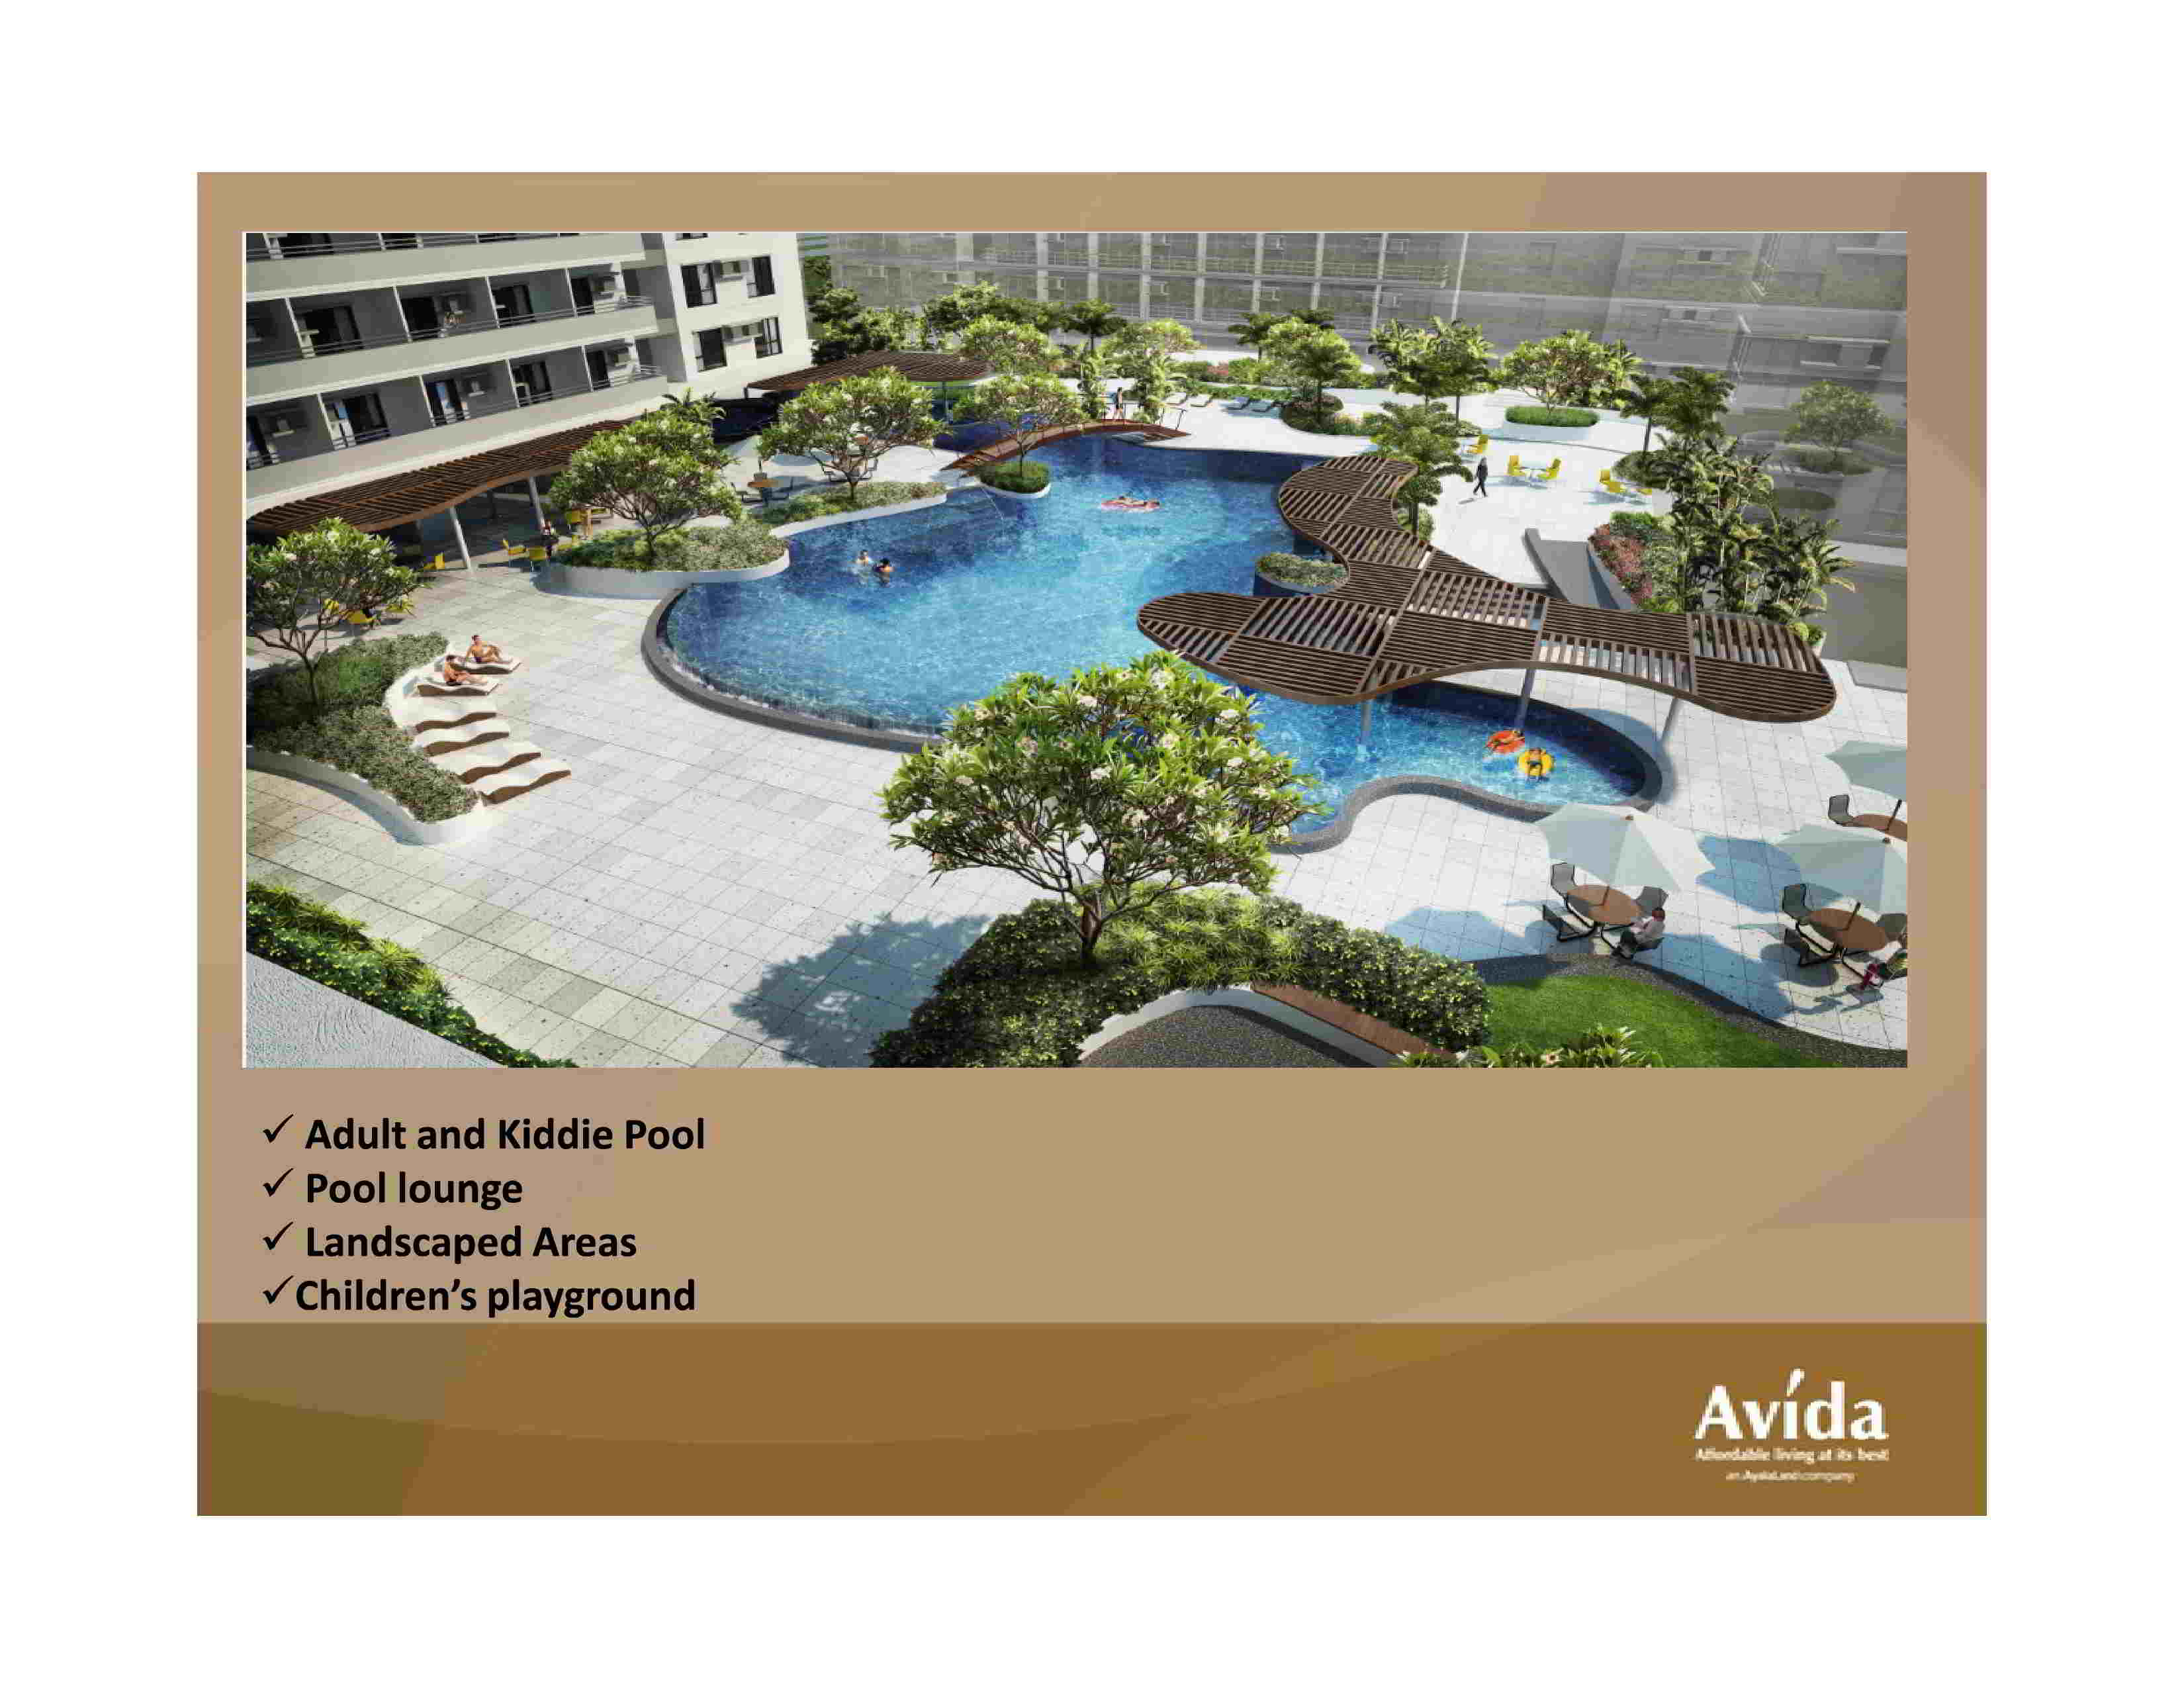 ASTEN TOWER AVIDA AMENITY